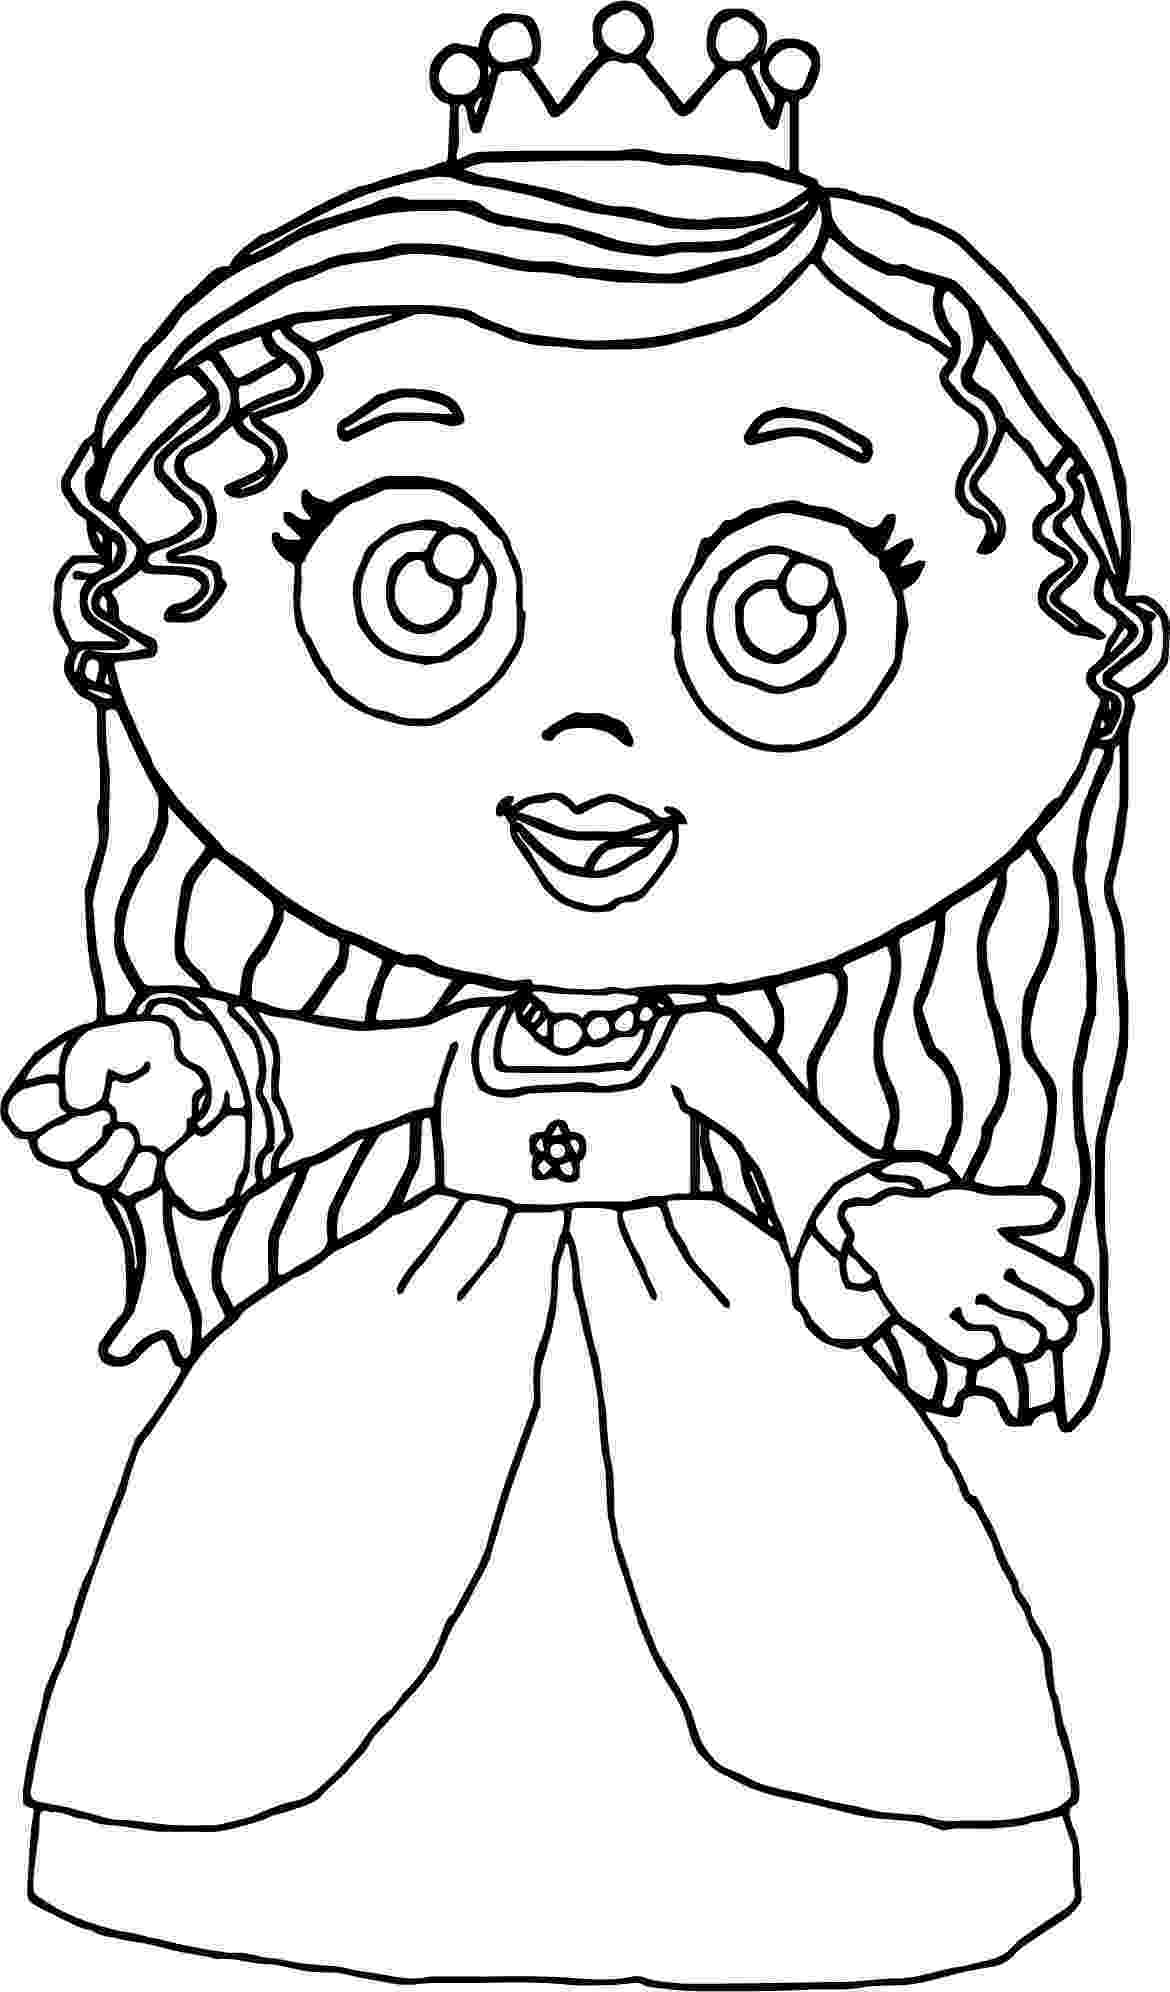 super colouring pages super why coloring pages best coloring pages for kids super colouring pages 1 2